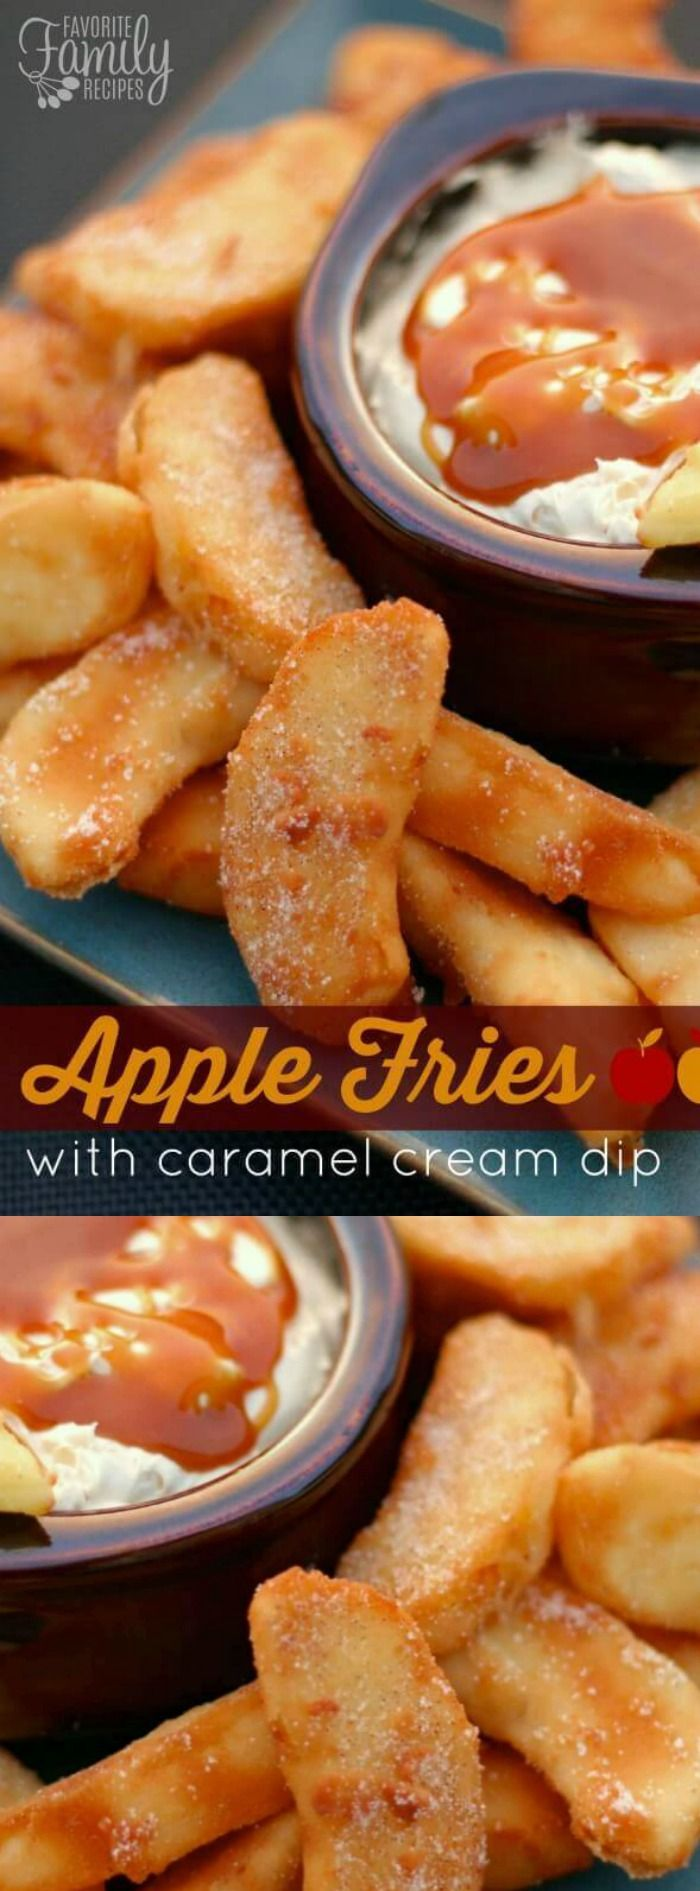 These Apple Fries with Caramel Cream Dip from Favorite Family Recipes are a must make this fall! The apples slices get lightly battered, fried and sprinkled with your favorites — cinnamon and sugar! #fall